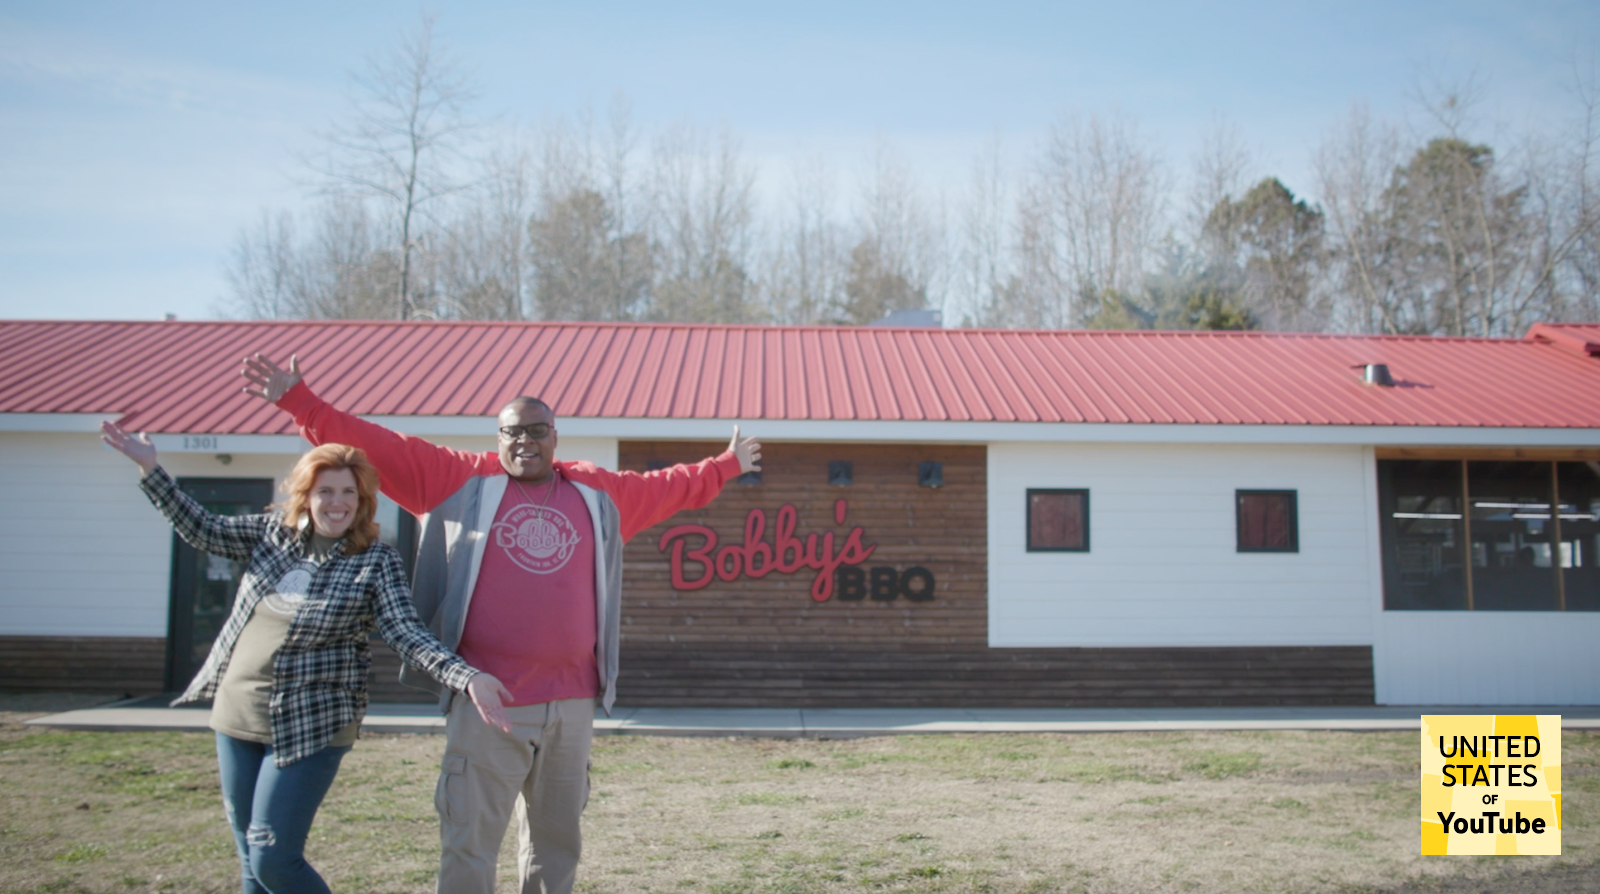 Bobby's BBQ: Serving the community, one meal at a time